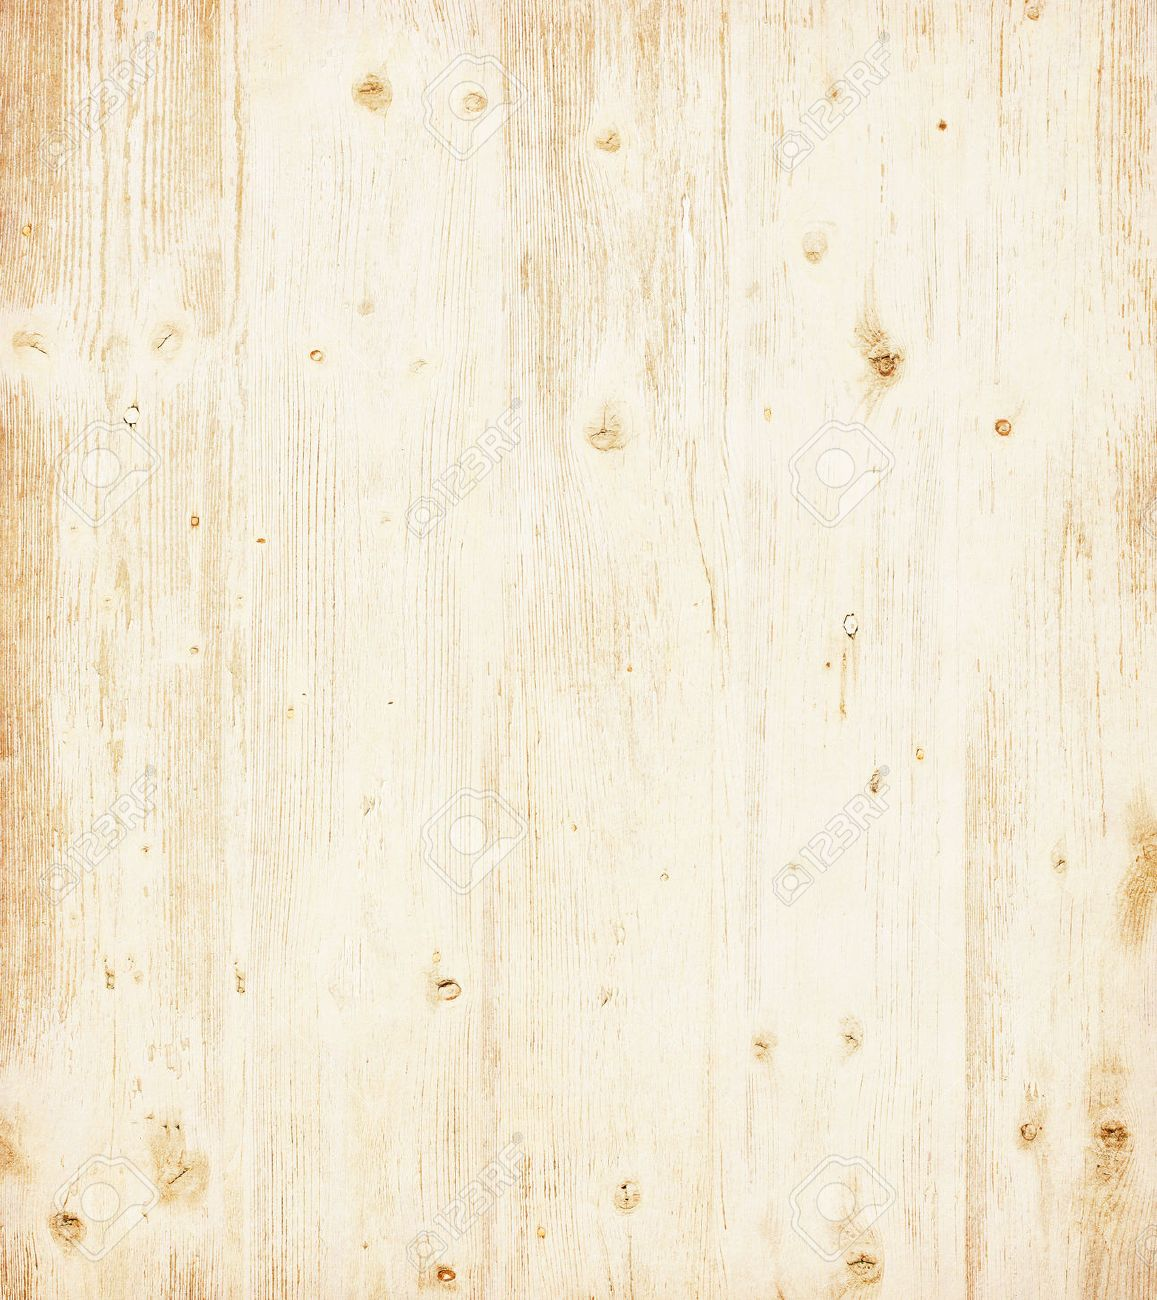 Wood Paneling Images Stock Pictures Royalty Free Wood Paneling